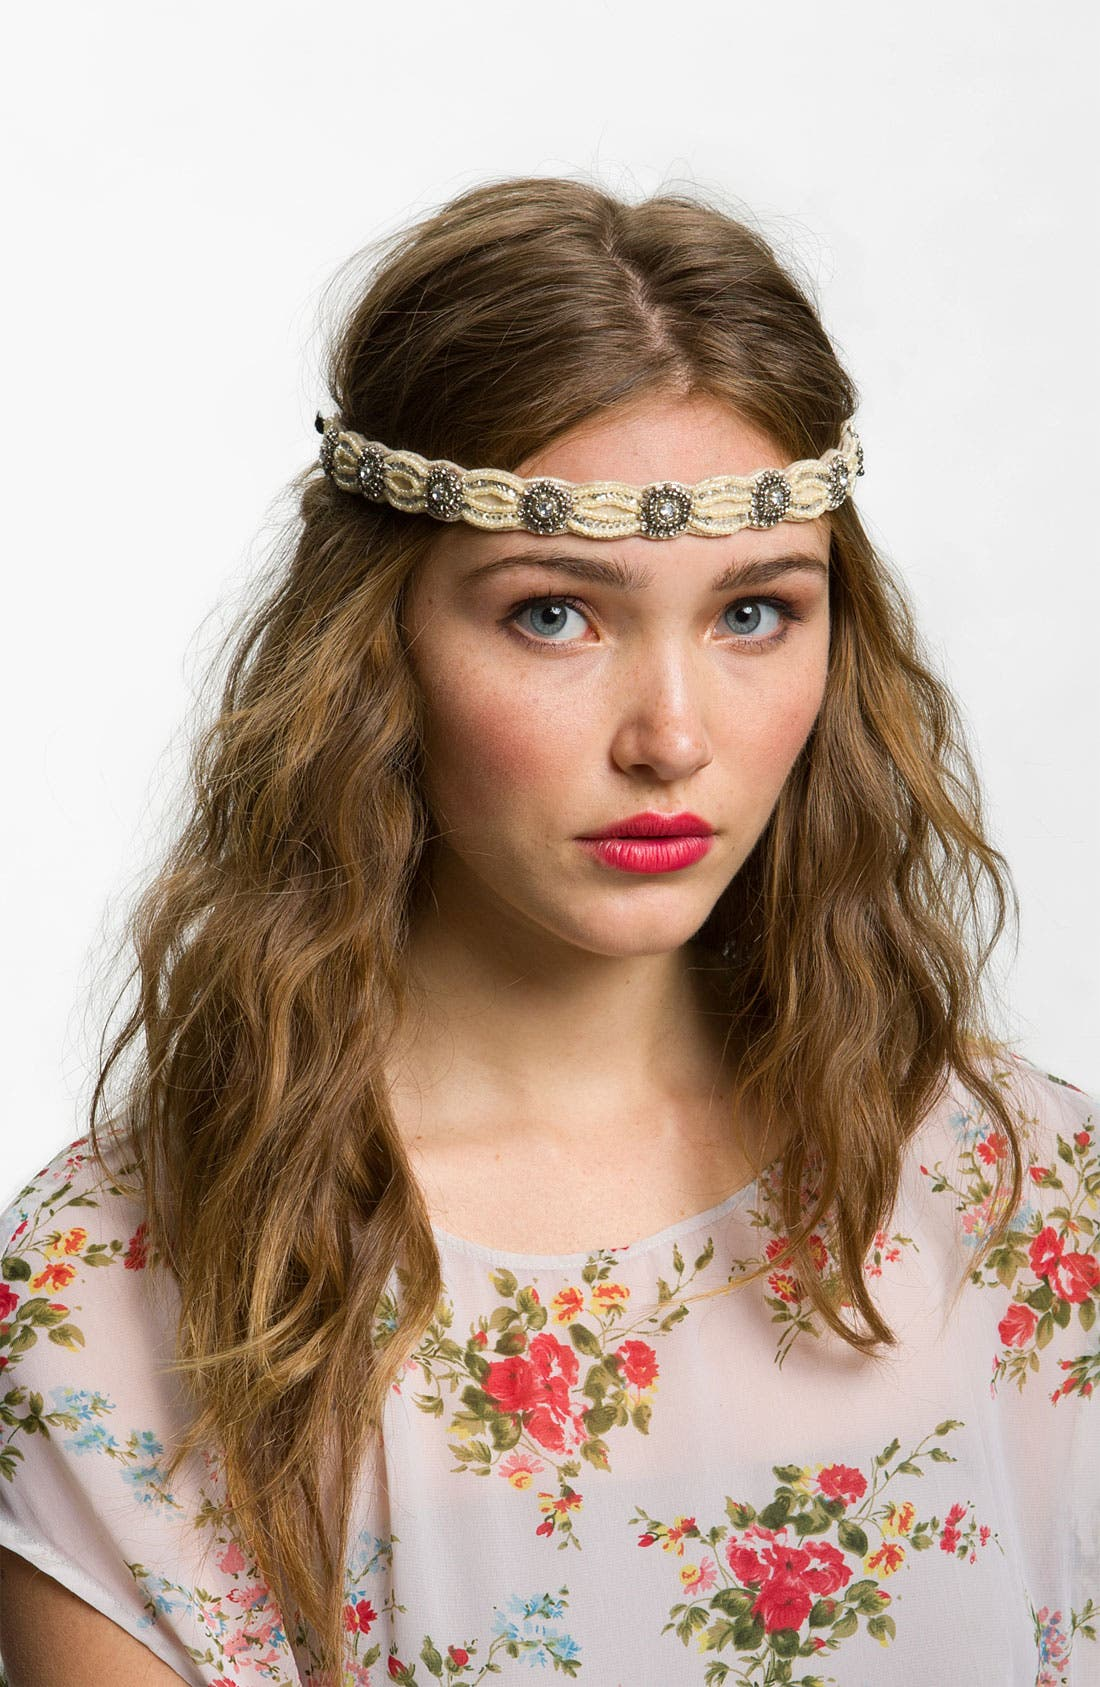 Alternate Image 1 Selected - BP. Beaded Glam Headband